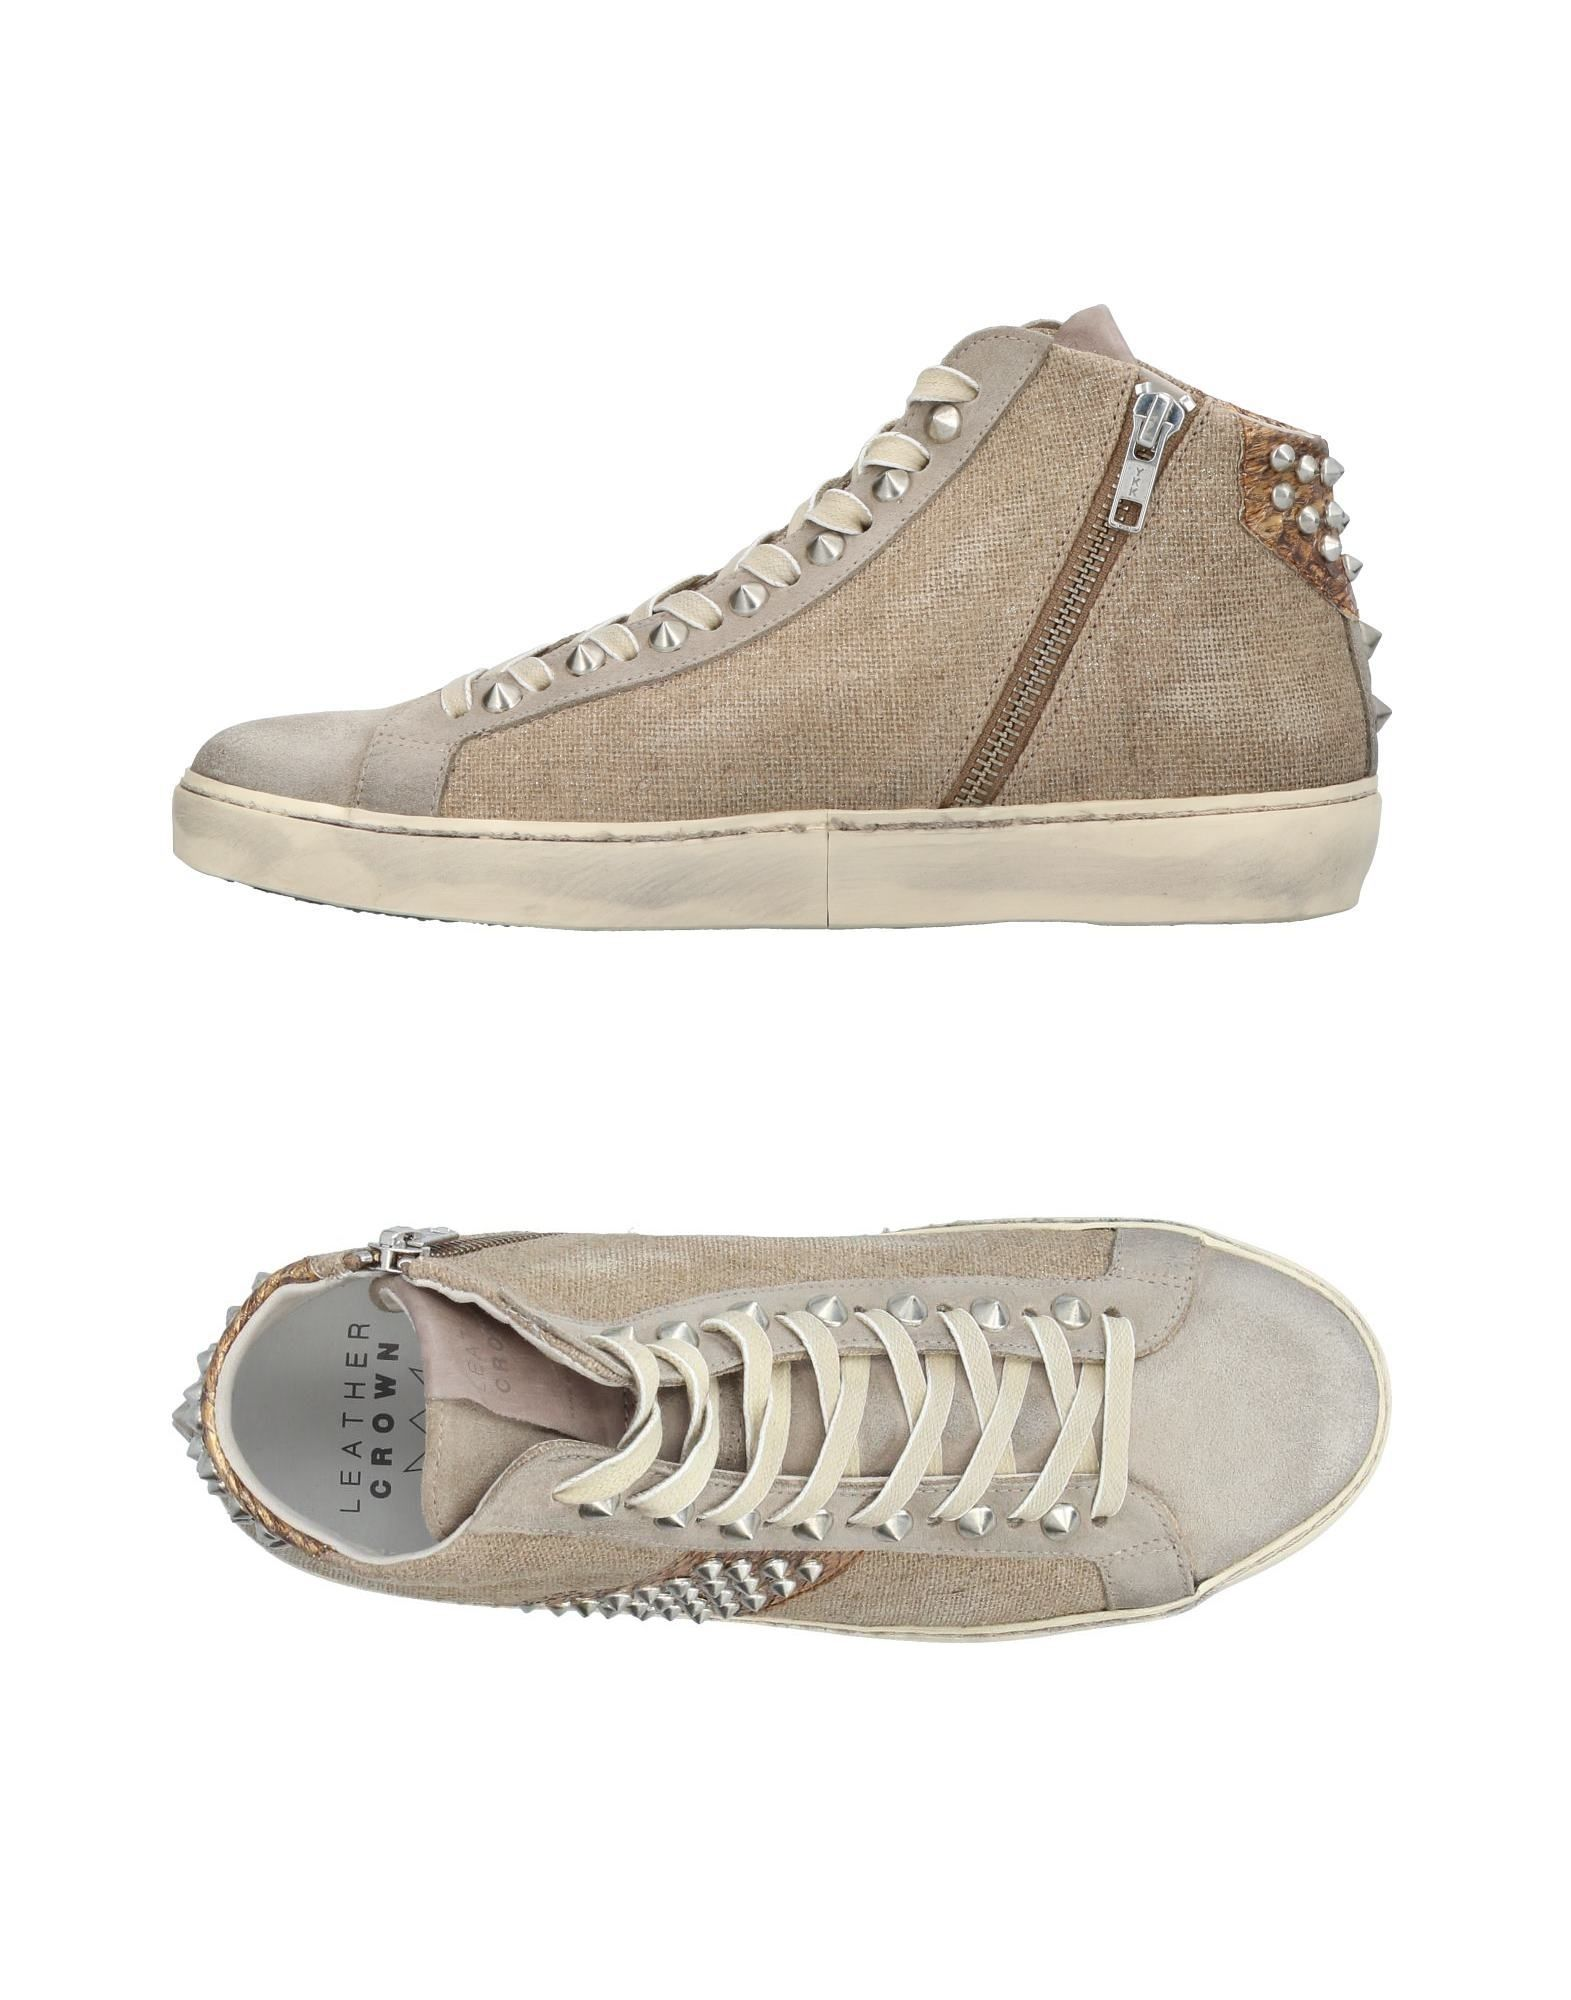 Baskets Leather Crown Femme - Chaussures Baskets Leather Crown Kaki Chaussures - casual sauvages ce812a